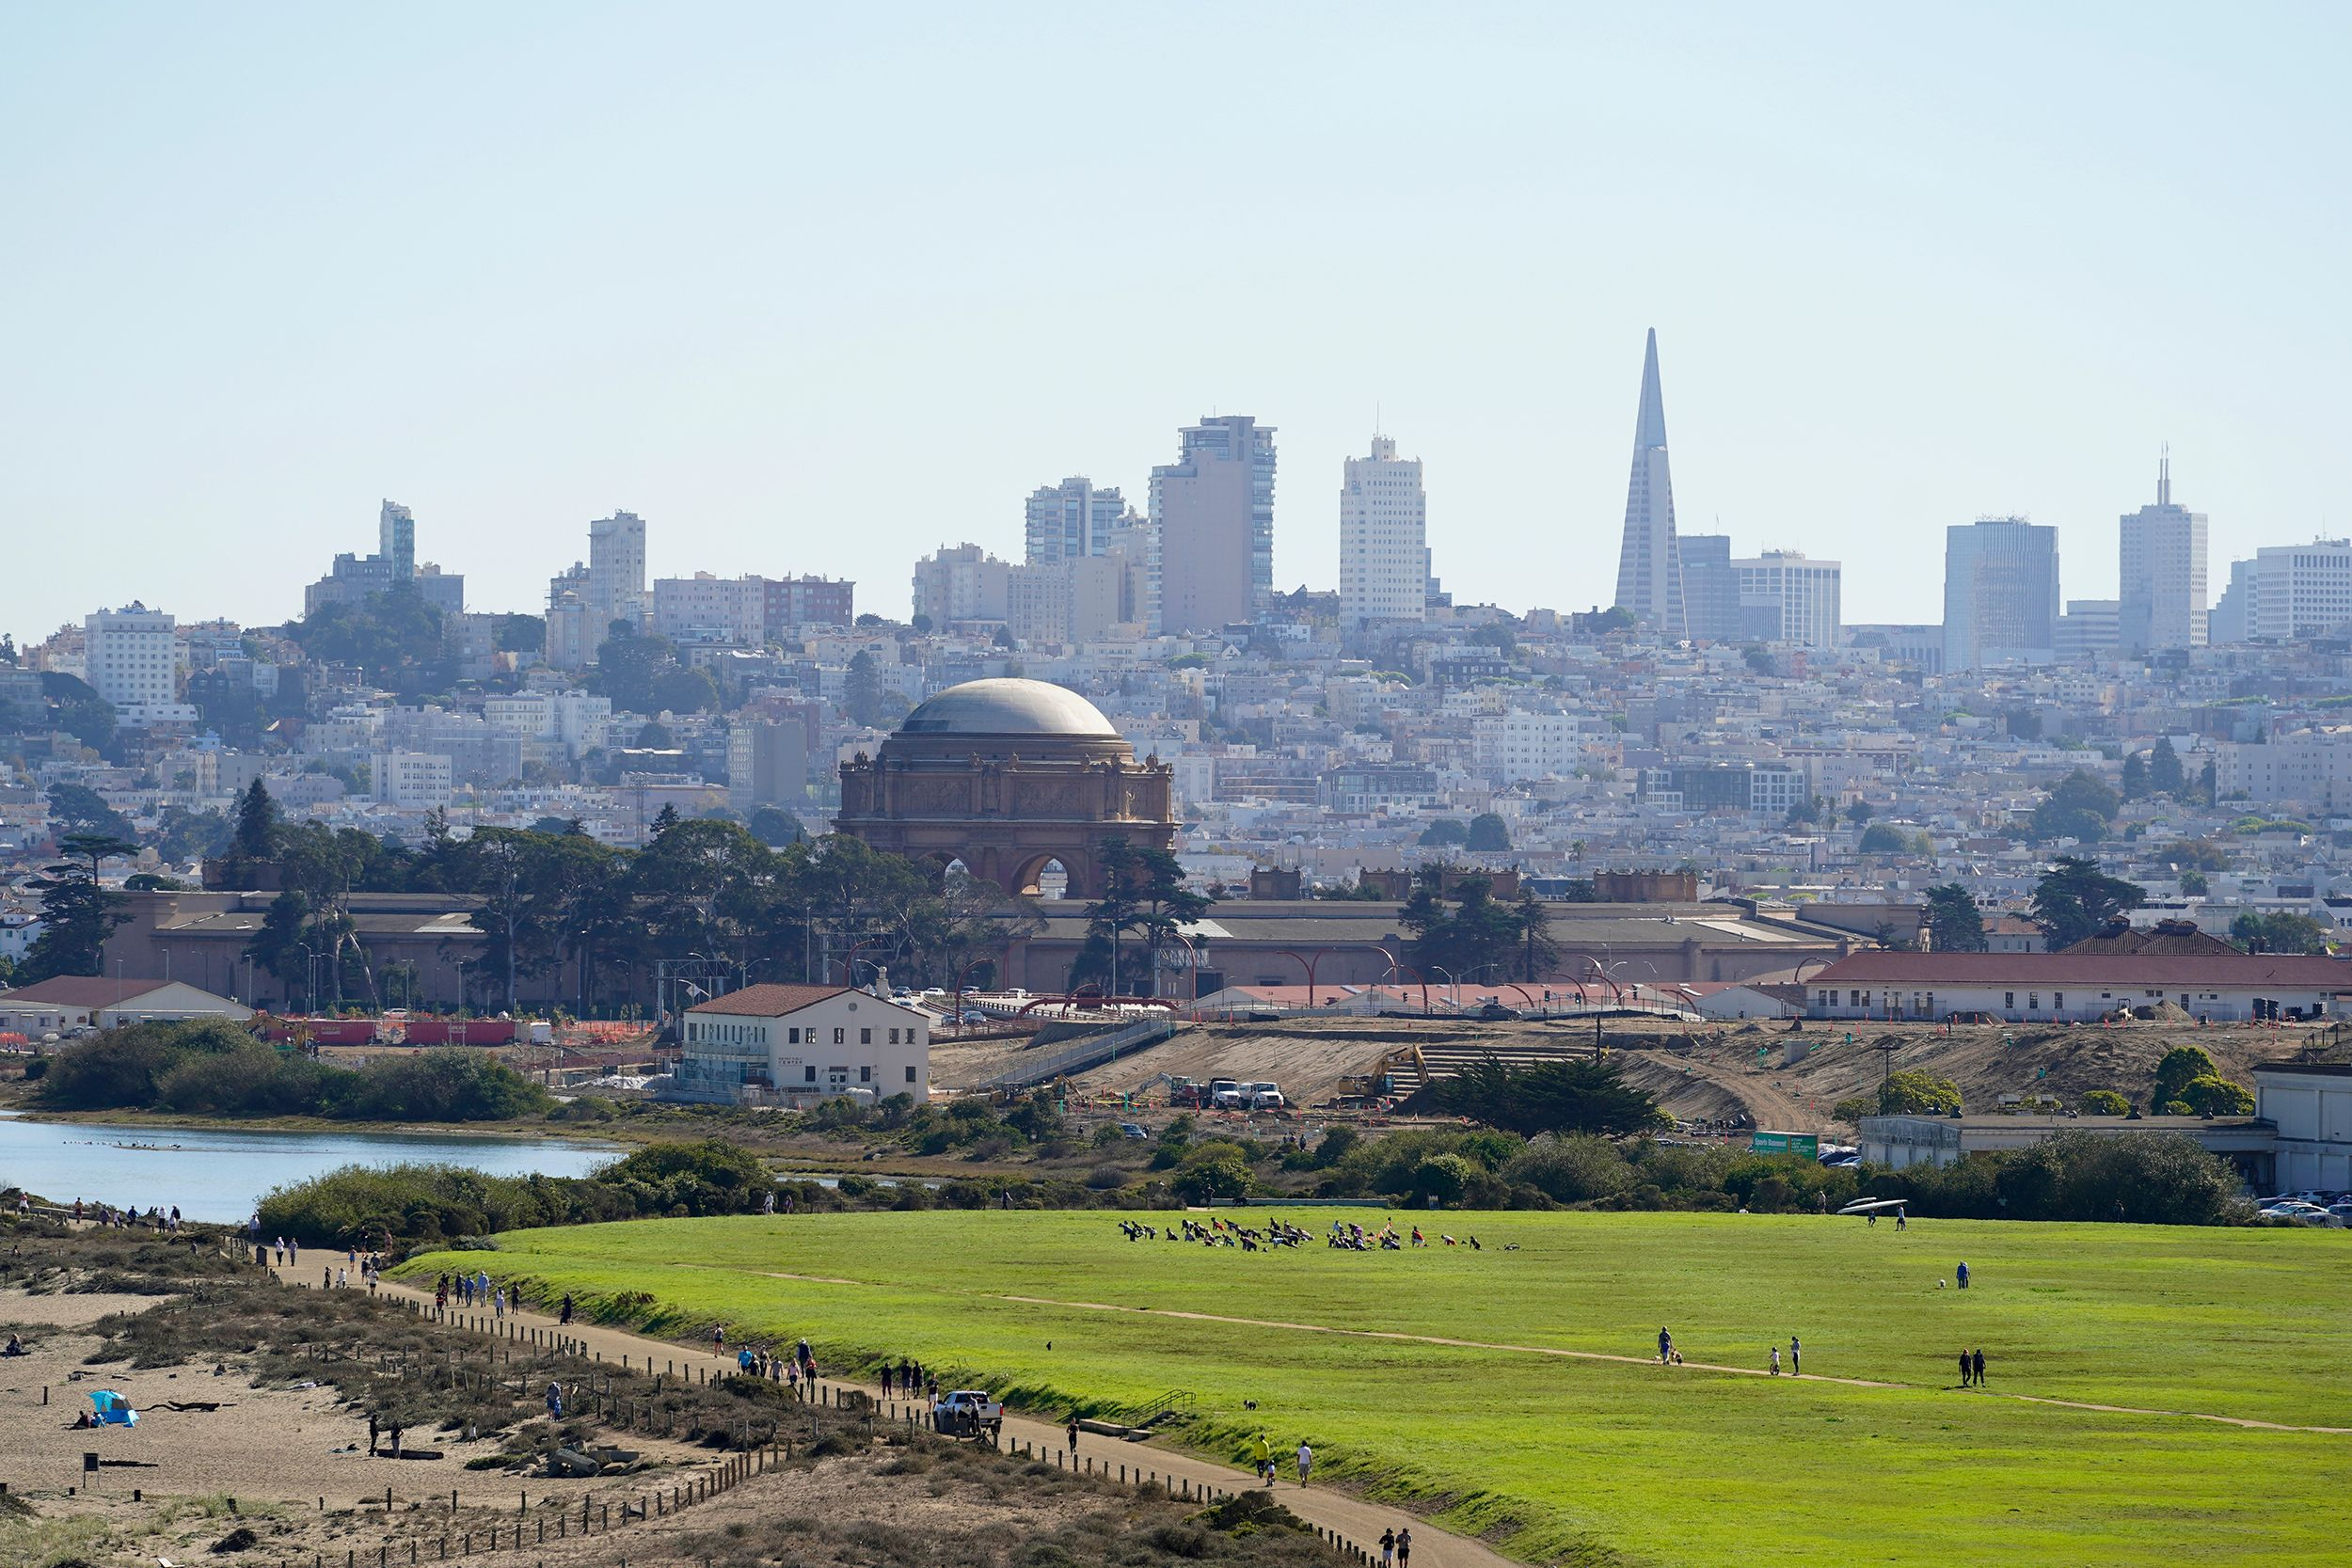 Cities like San Francisco are setting new energy codes like banning natural gas in new construction, but there has been backl